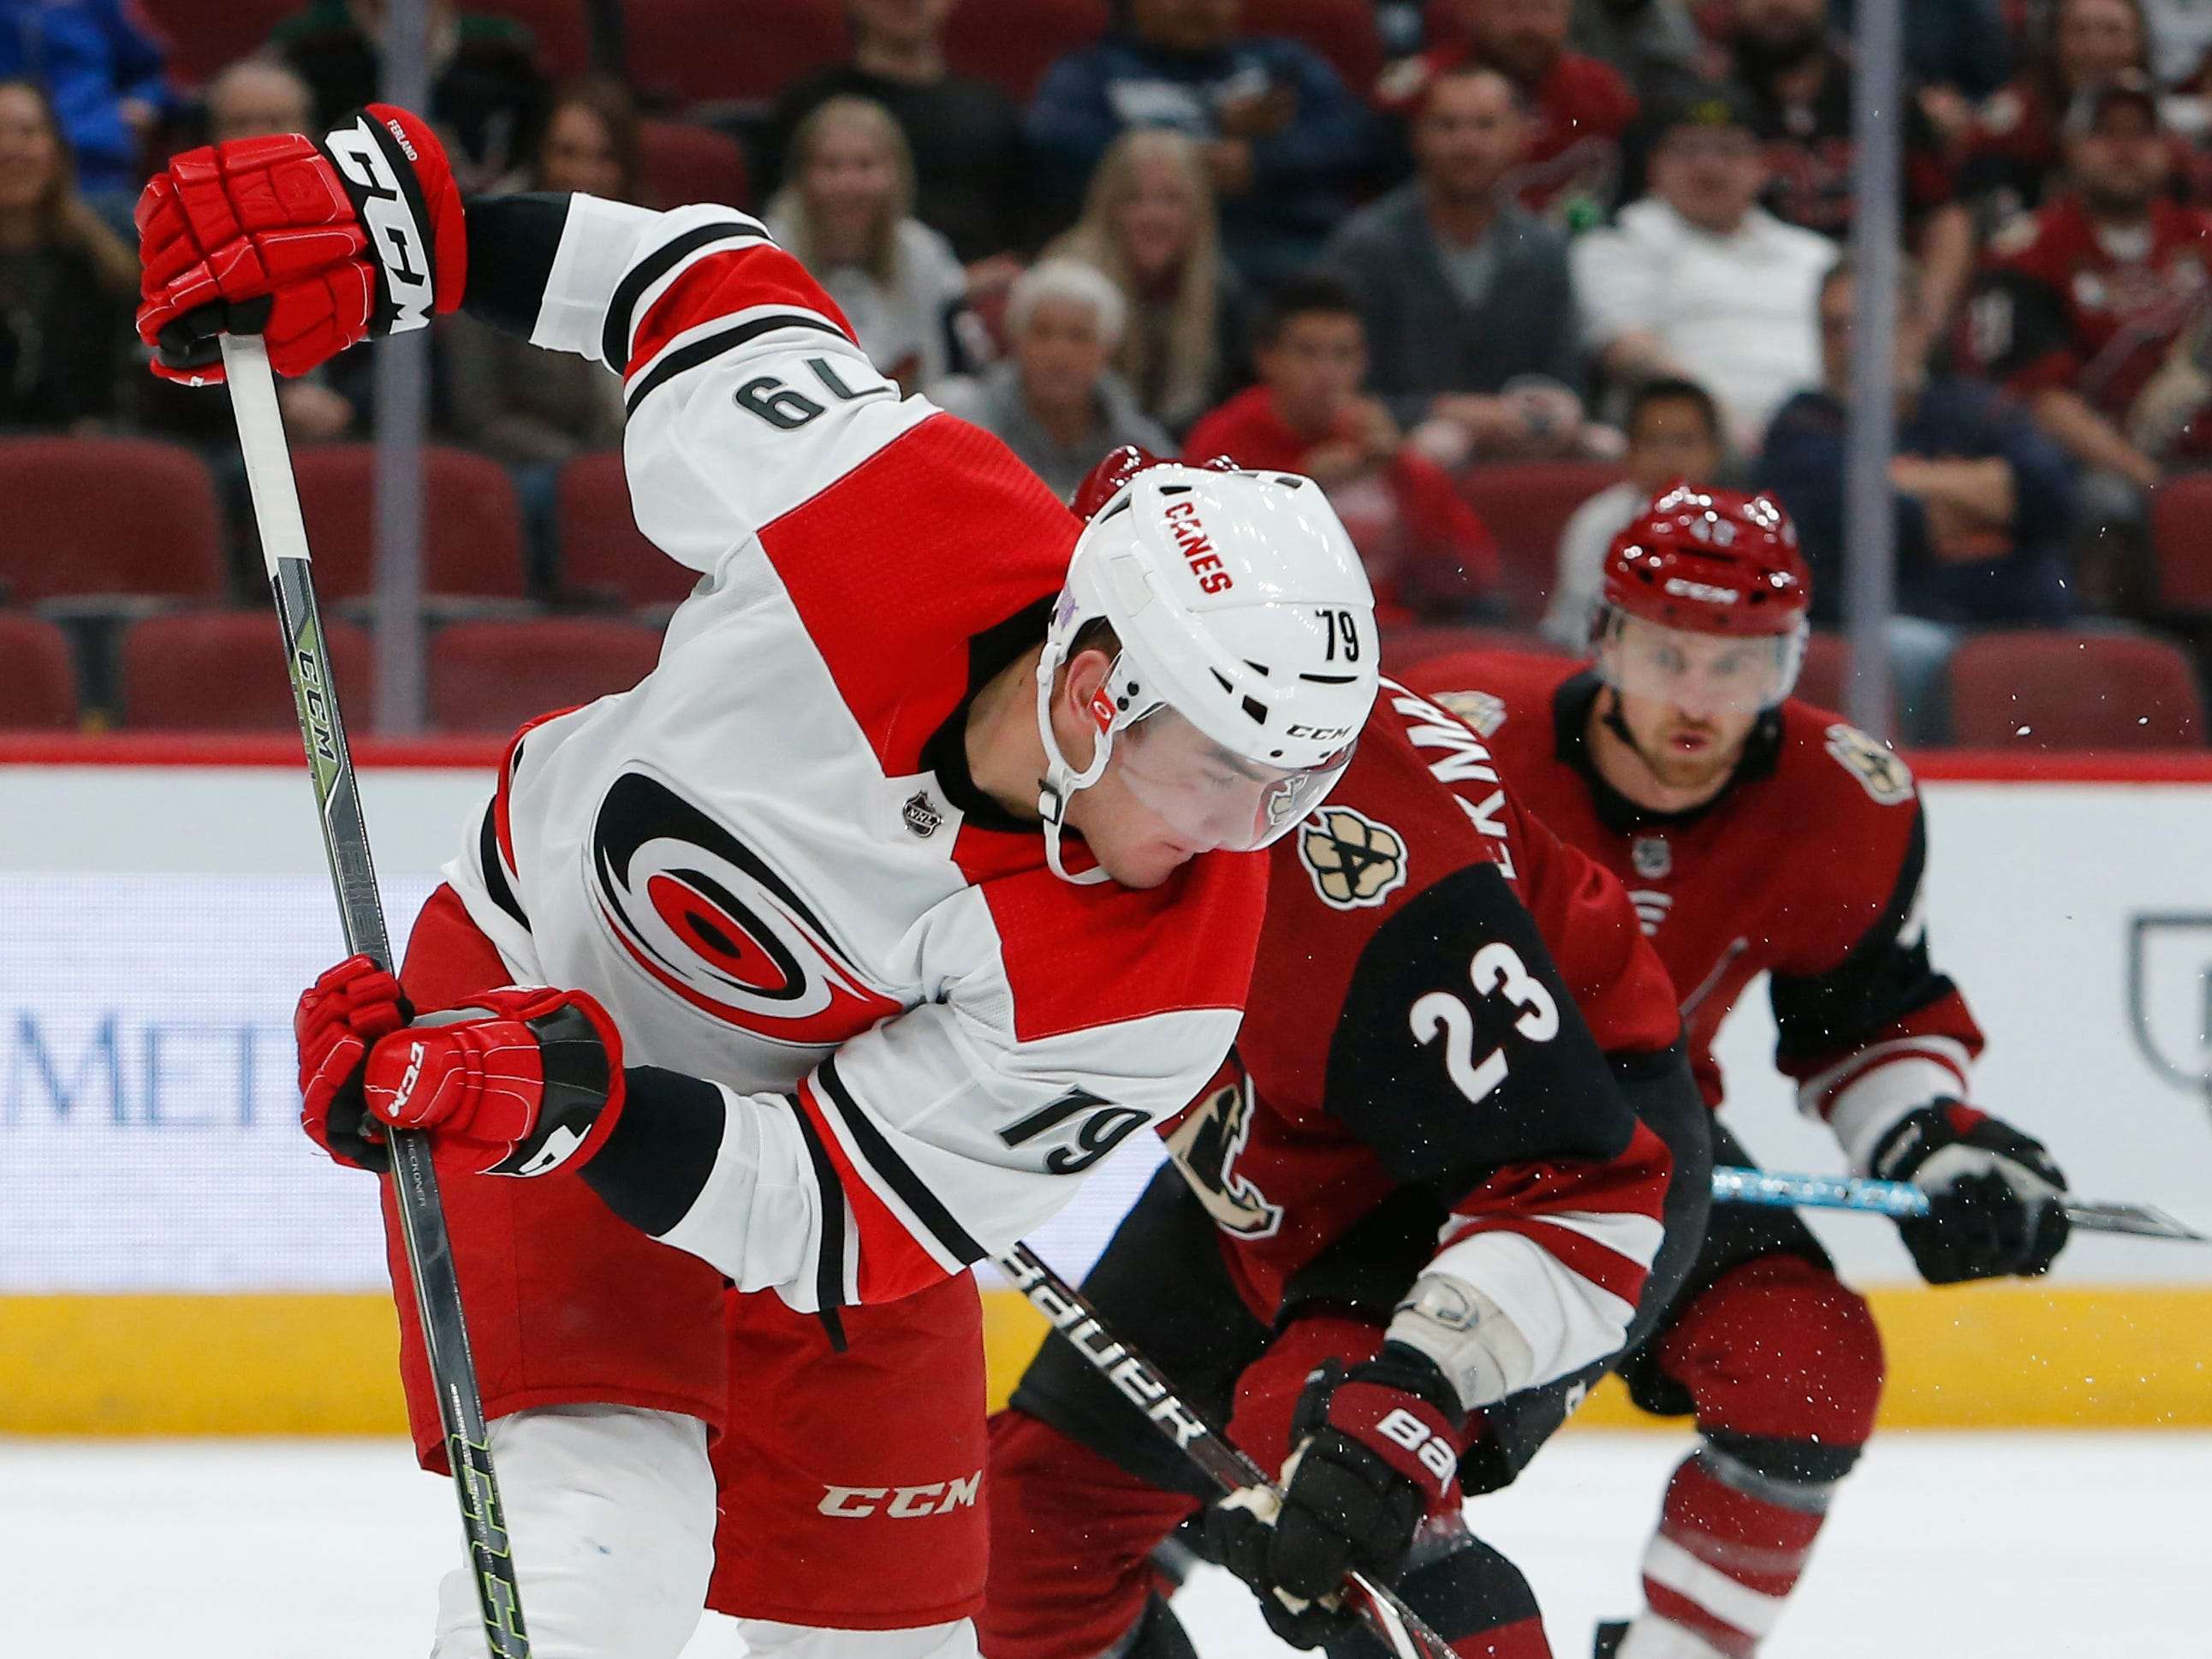 Carolina Hurricanes left wing Micheal Ferland (79) in the first period during an NHL hockey game against the Arizona Coyotes, Friday, Nov. 2, 2018, in Glendale, Ariz. (AP Photo/Rick Scuteri)